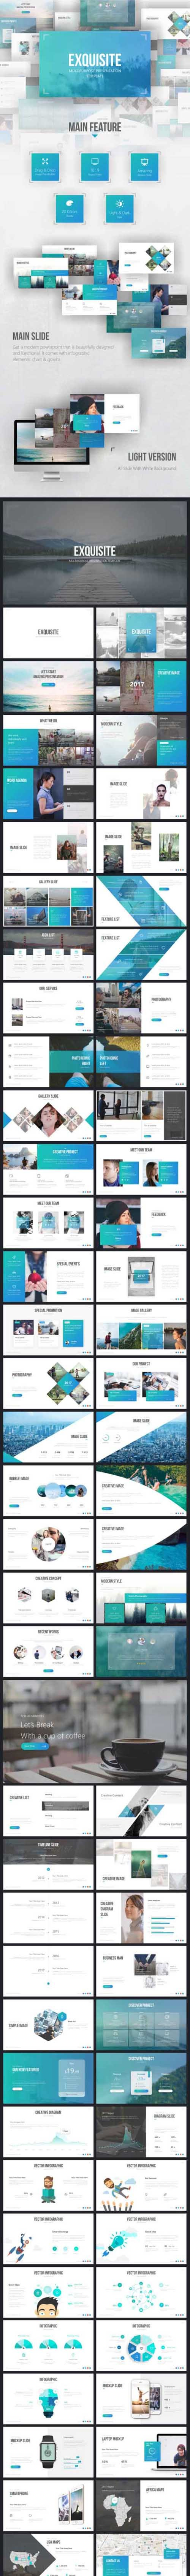 Exquisite Multipurpose Presentation Template 19564408